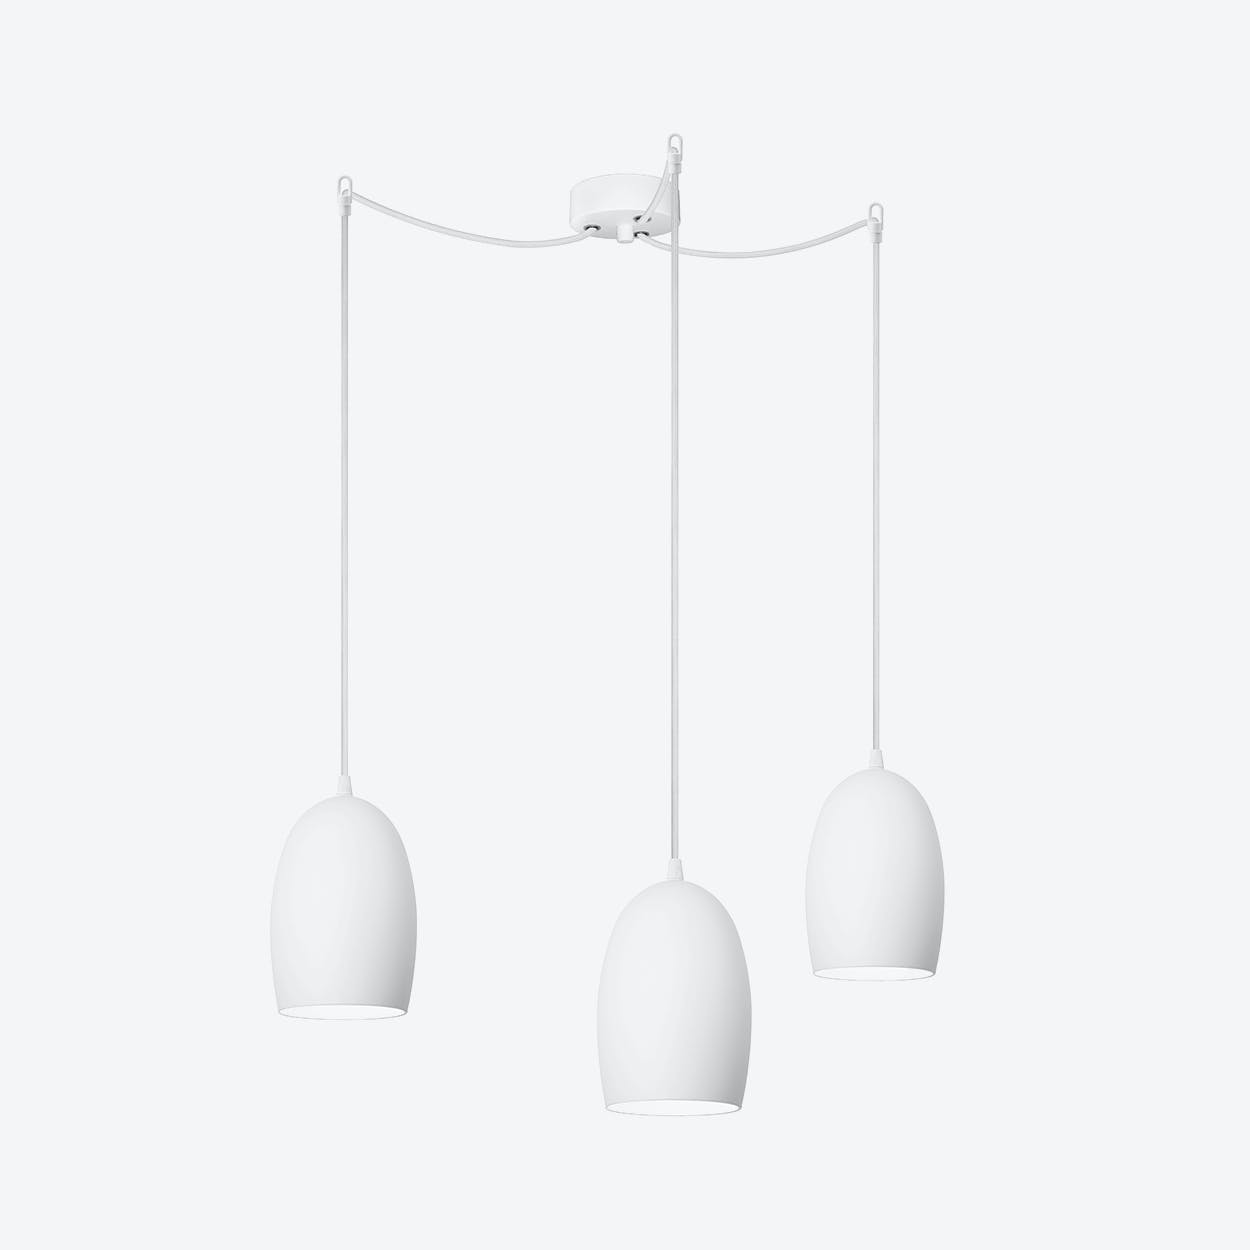 UME Triple Pendant Light in Matte Opal